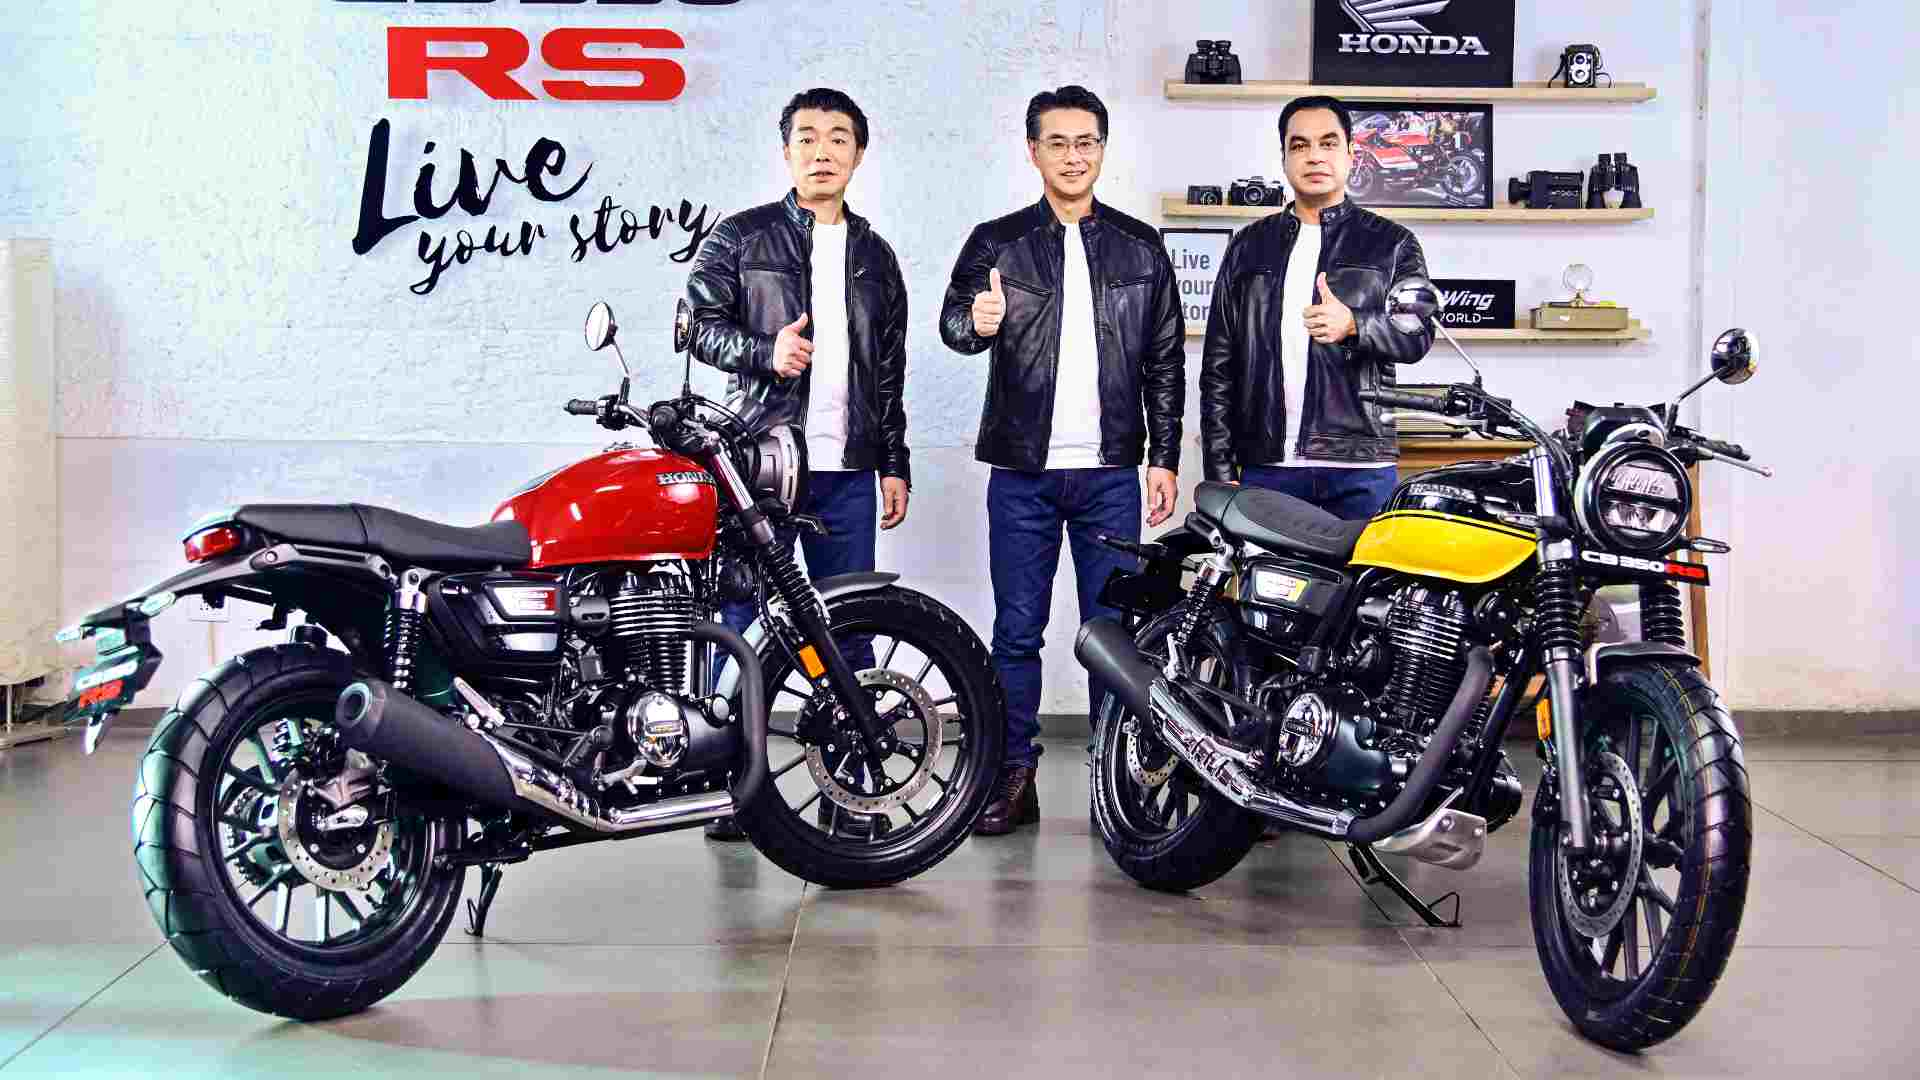 Honda CB350 RS launched in India at Rs 1.96 lakh; deliveries to commence in March